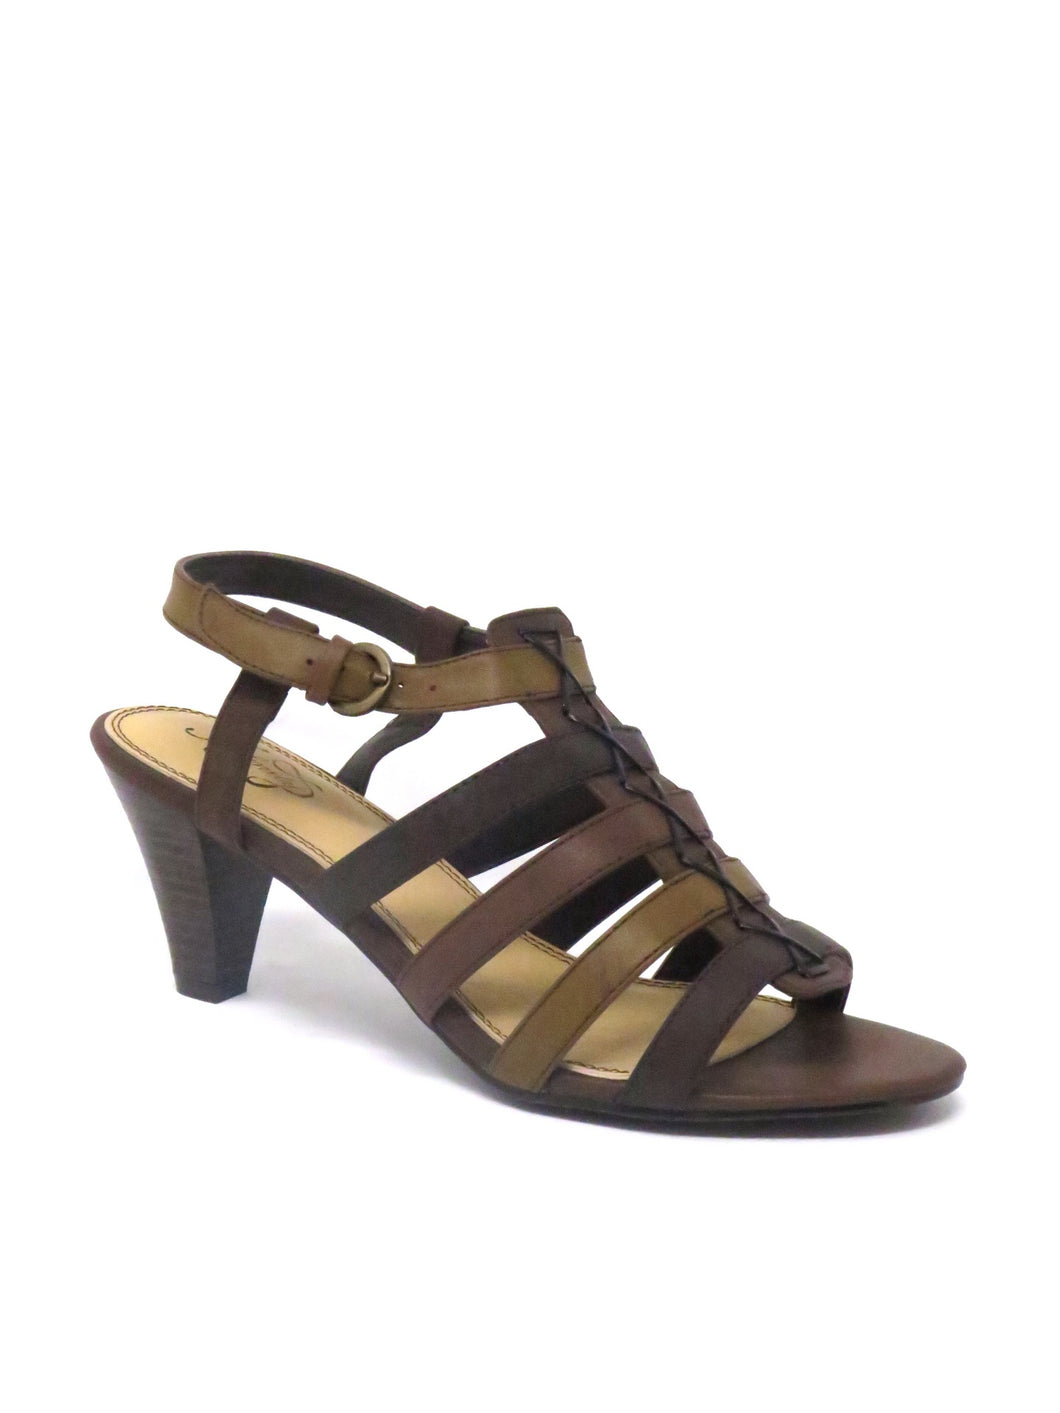 Infinity | 16-1705 | Dress Sandal | Walnut